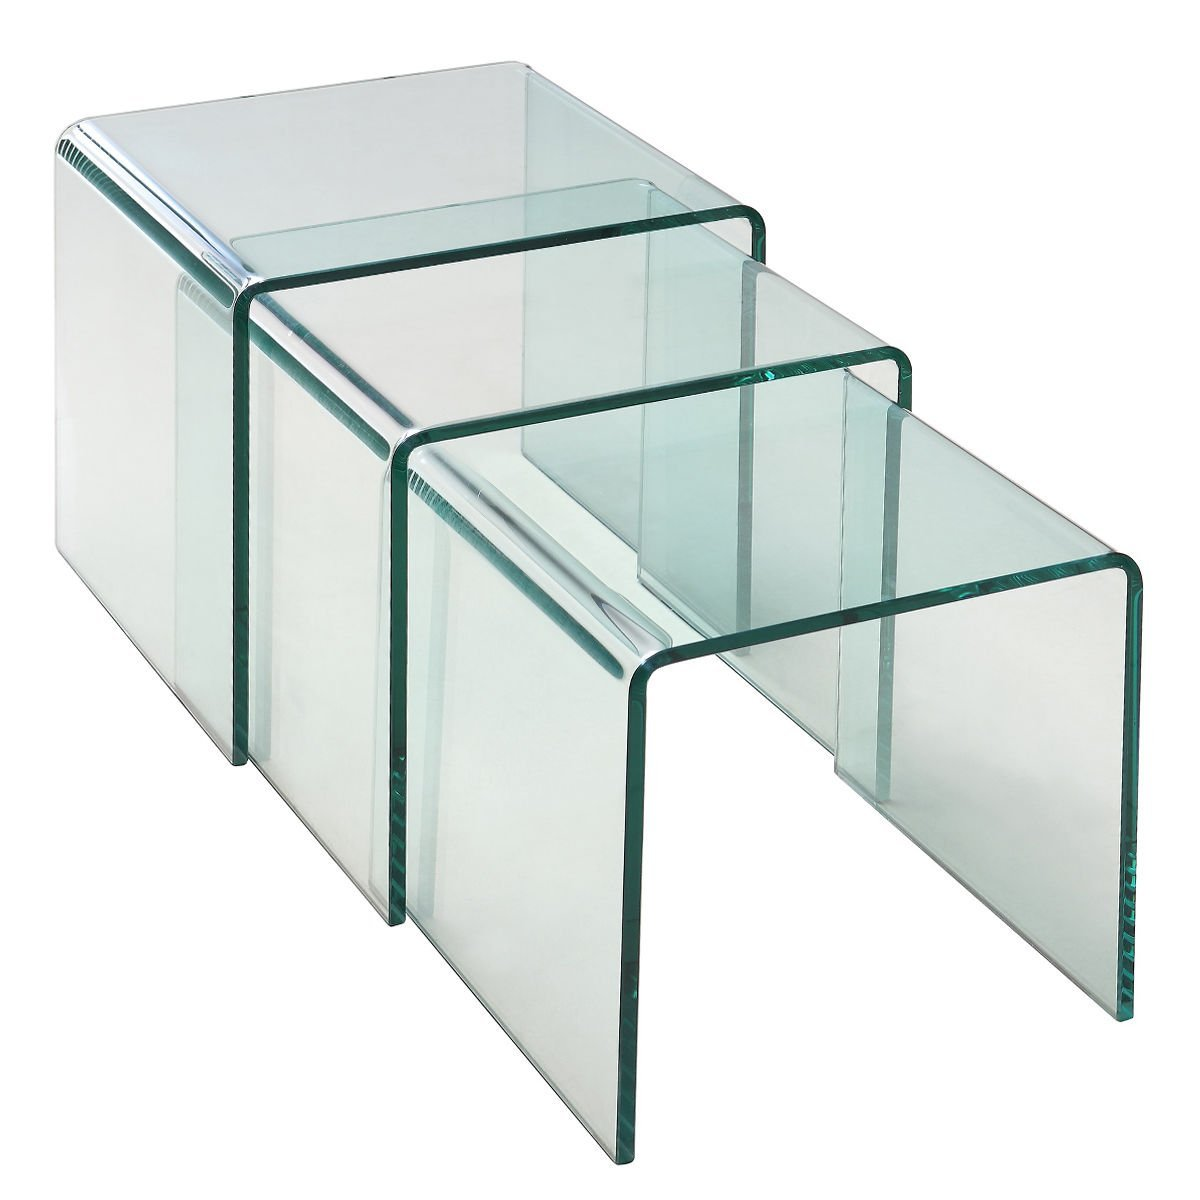 Tangkula 3 pcs End Table Set Stacking Nesting coffee tables Tempered Glass Home Living Room Furniture (TR)